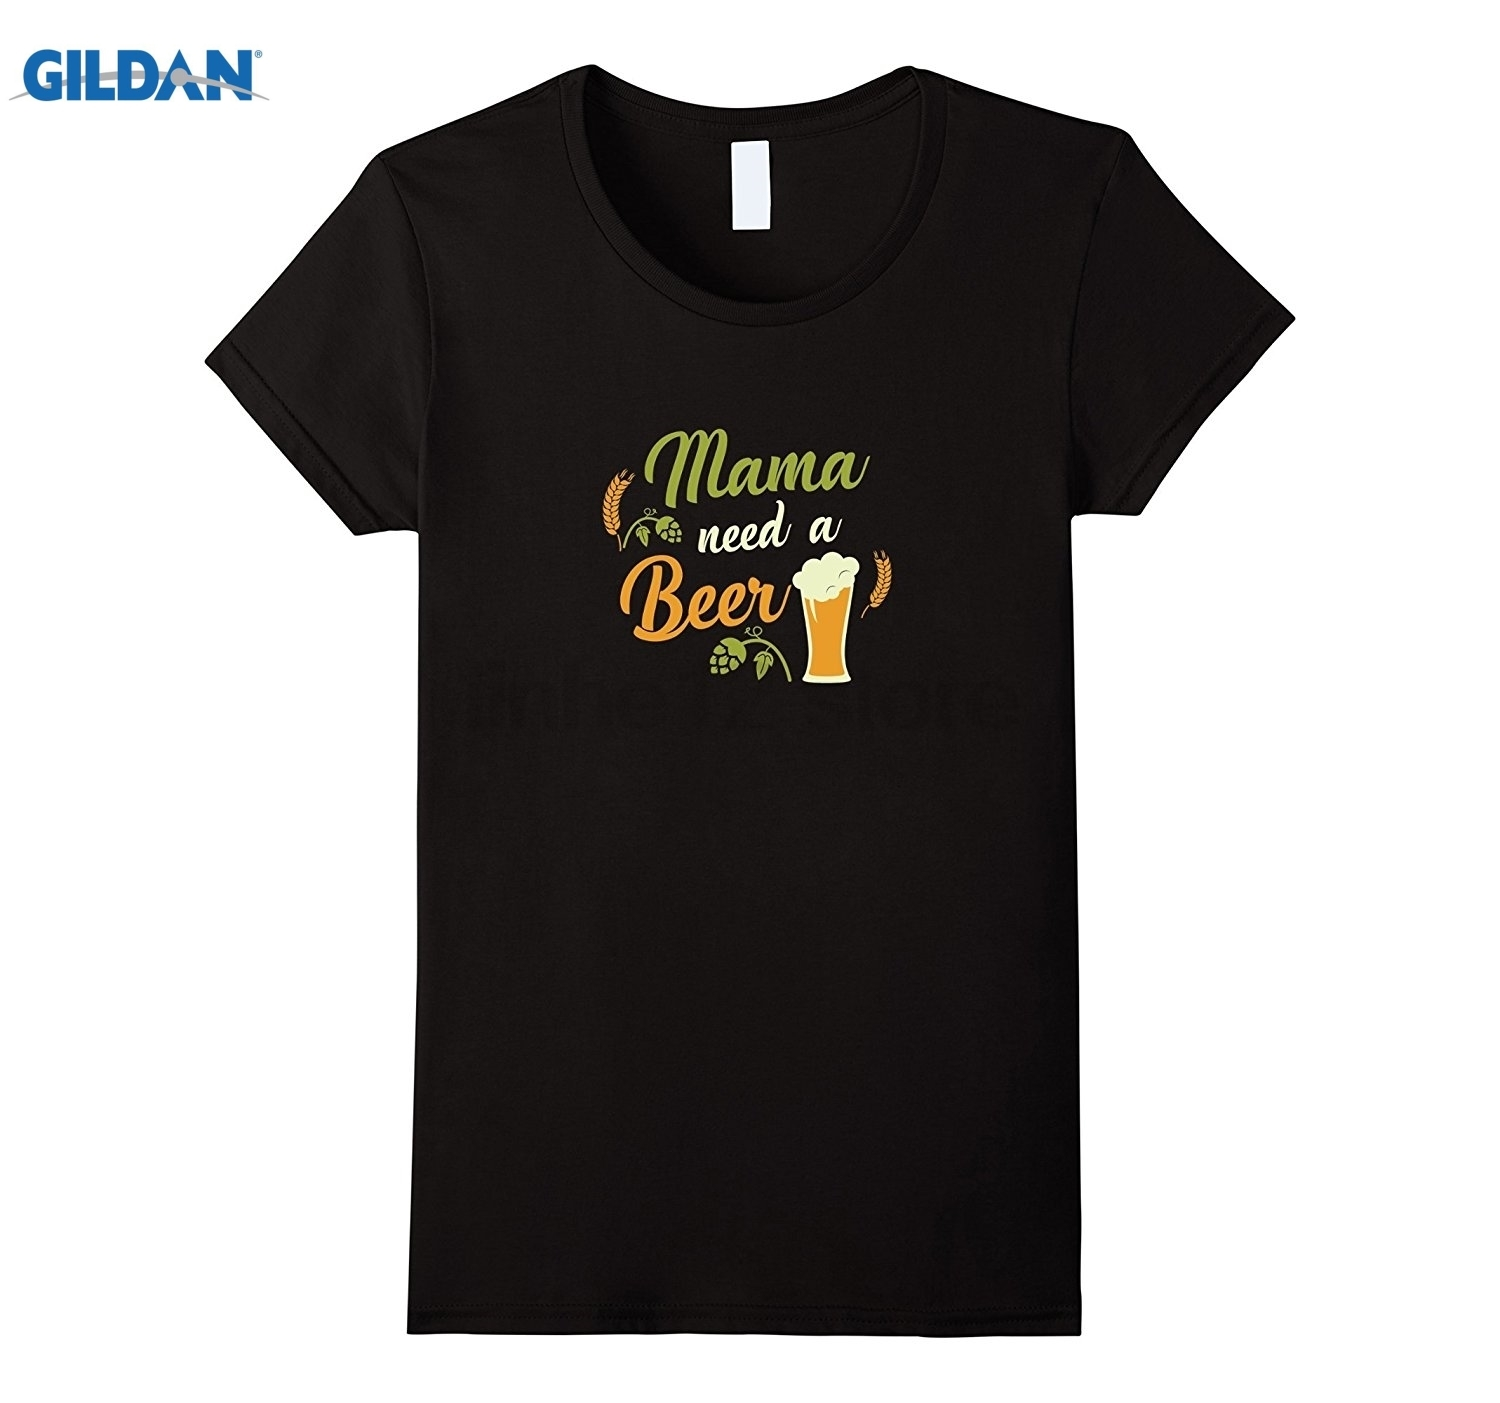 GILDAN Womens Mama need a Beer Premium T-Shirt for Mothers Day 2017 Womens T-shirt